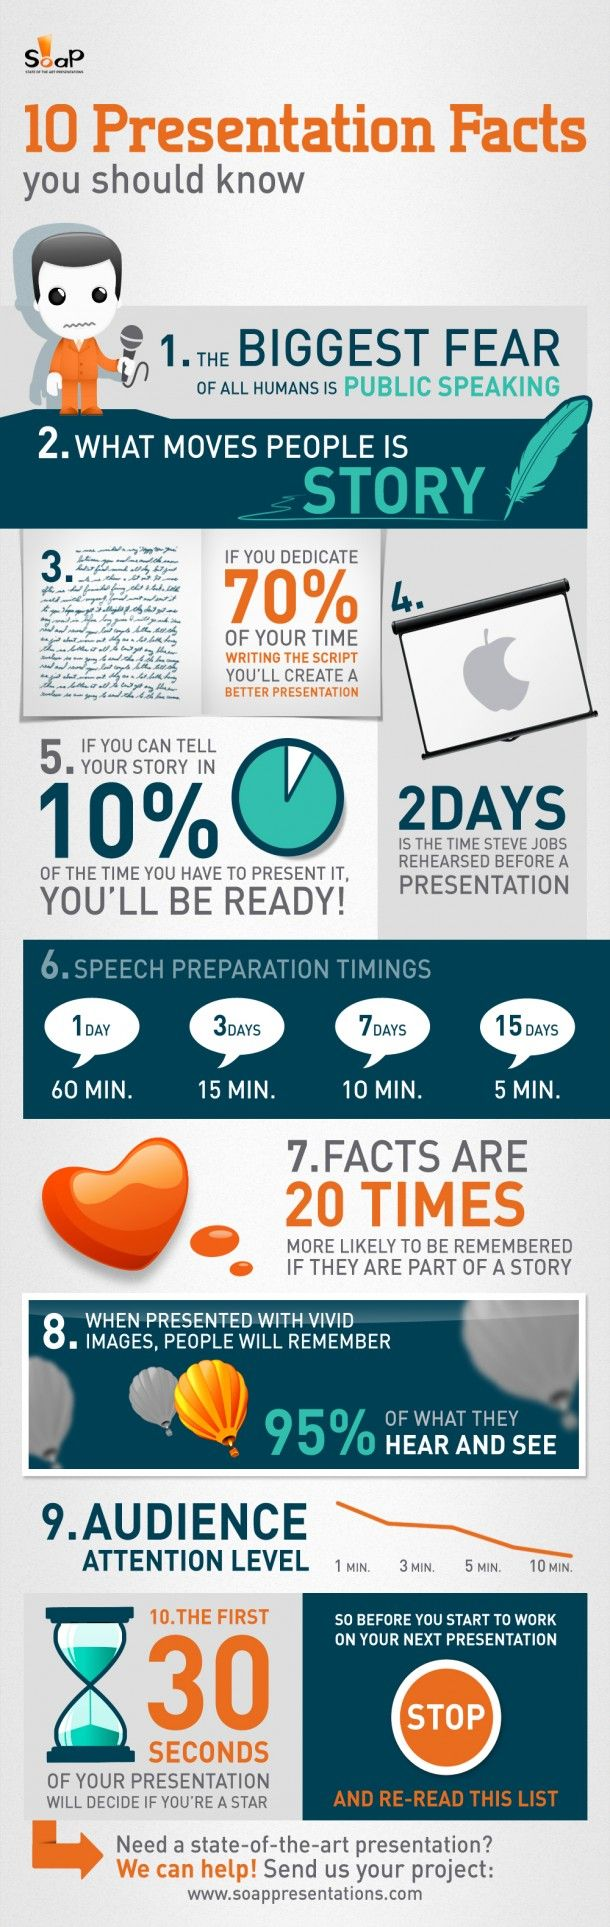 67 Powerful Presentation Tips (That Work GREAT)